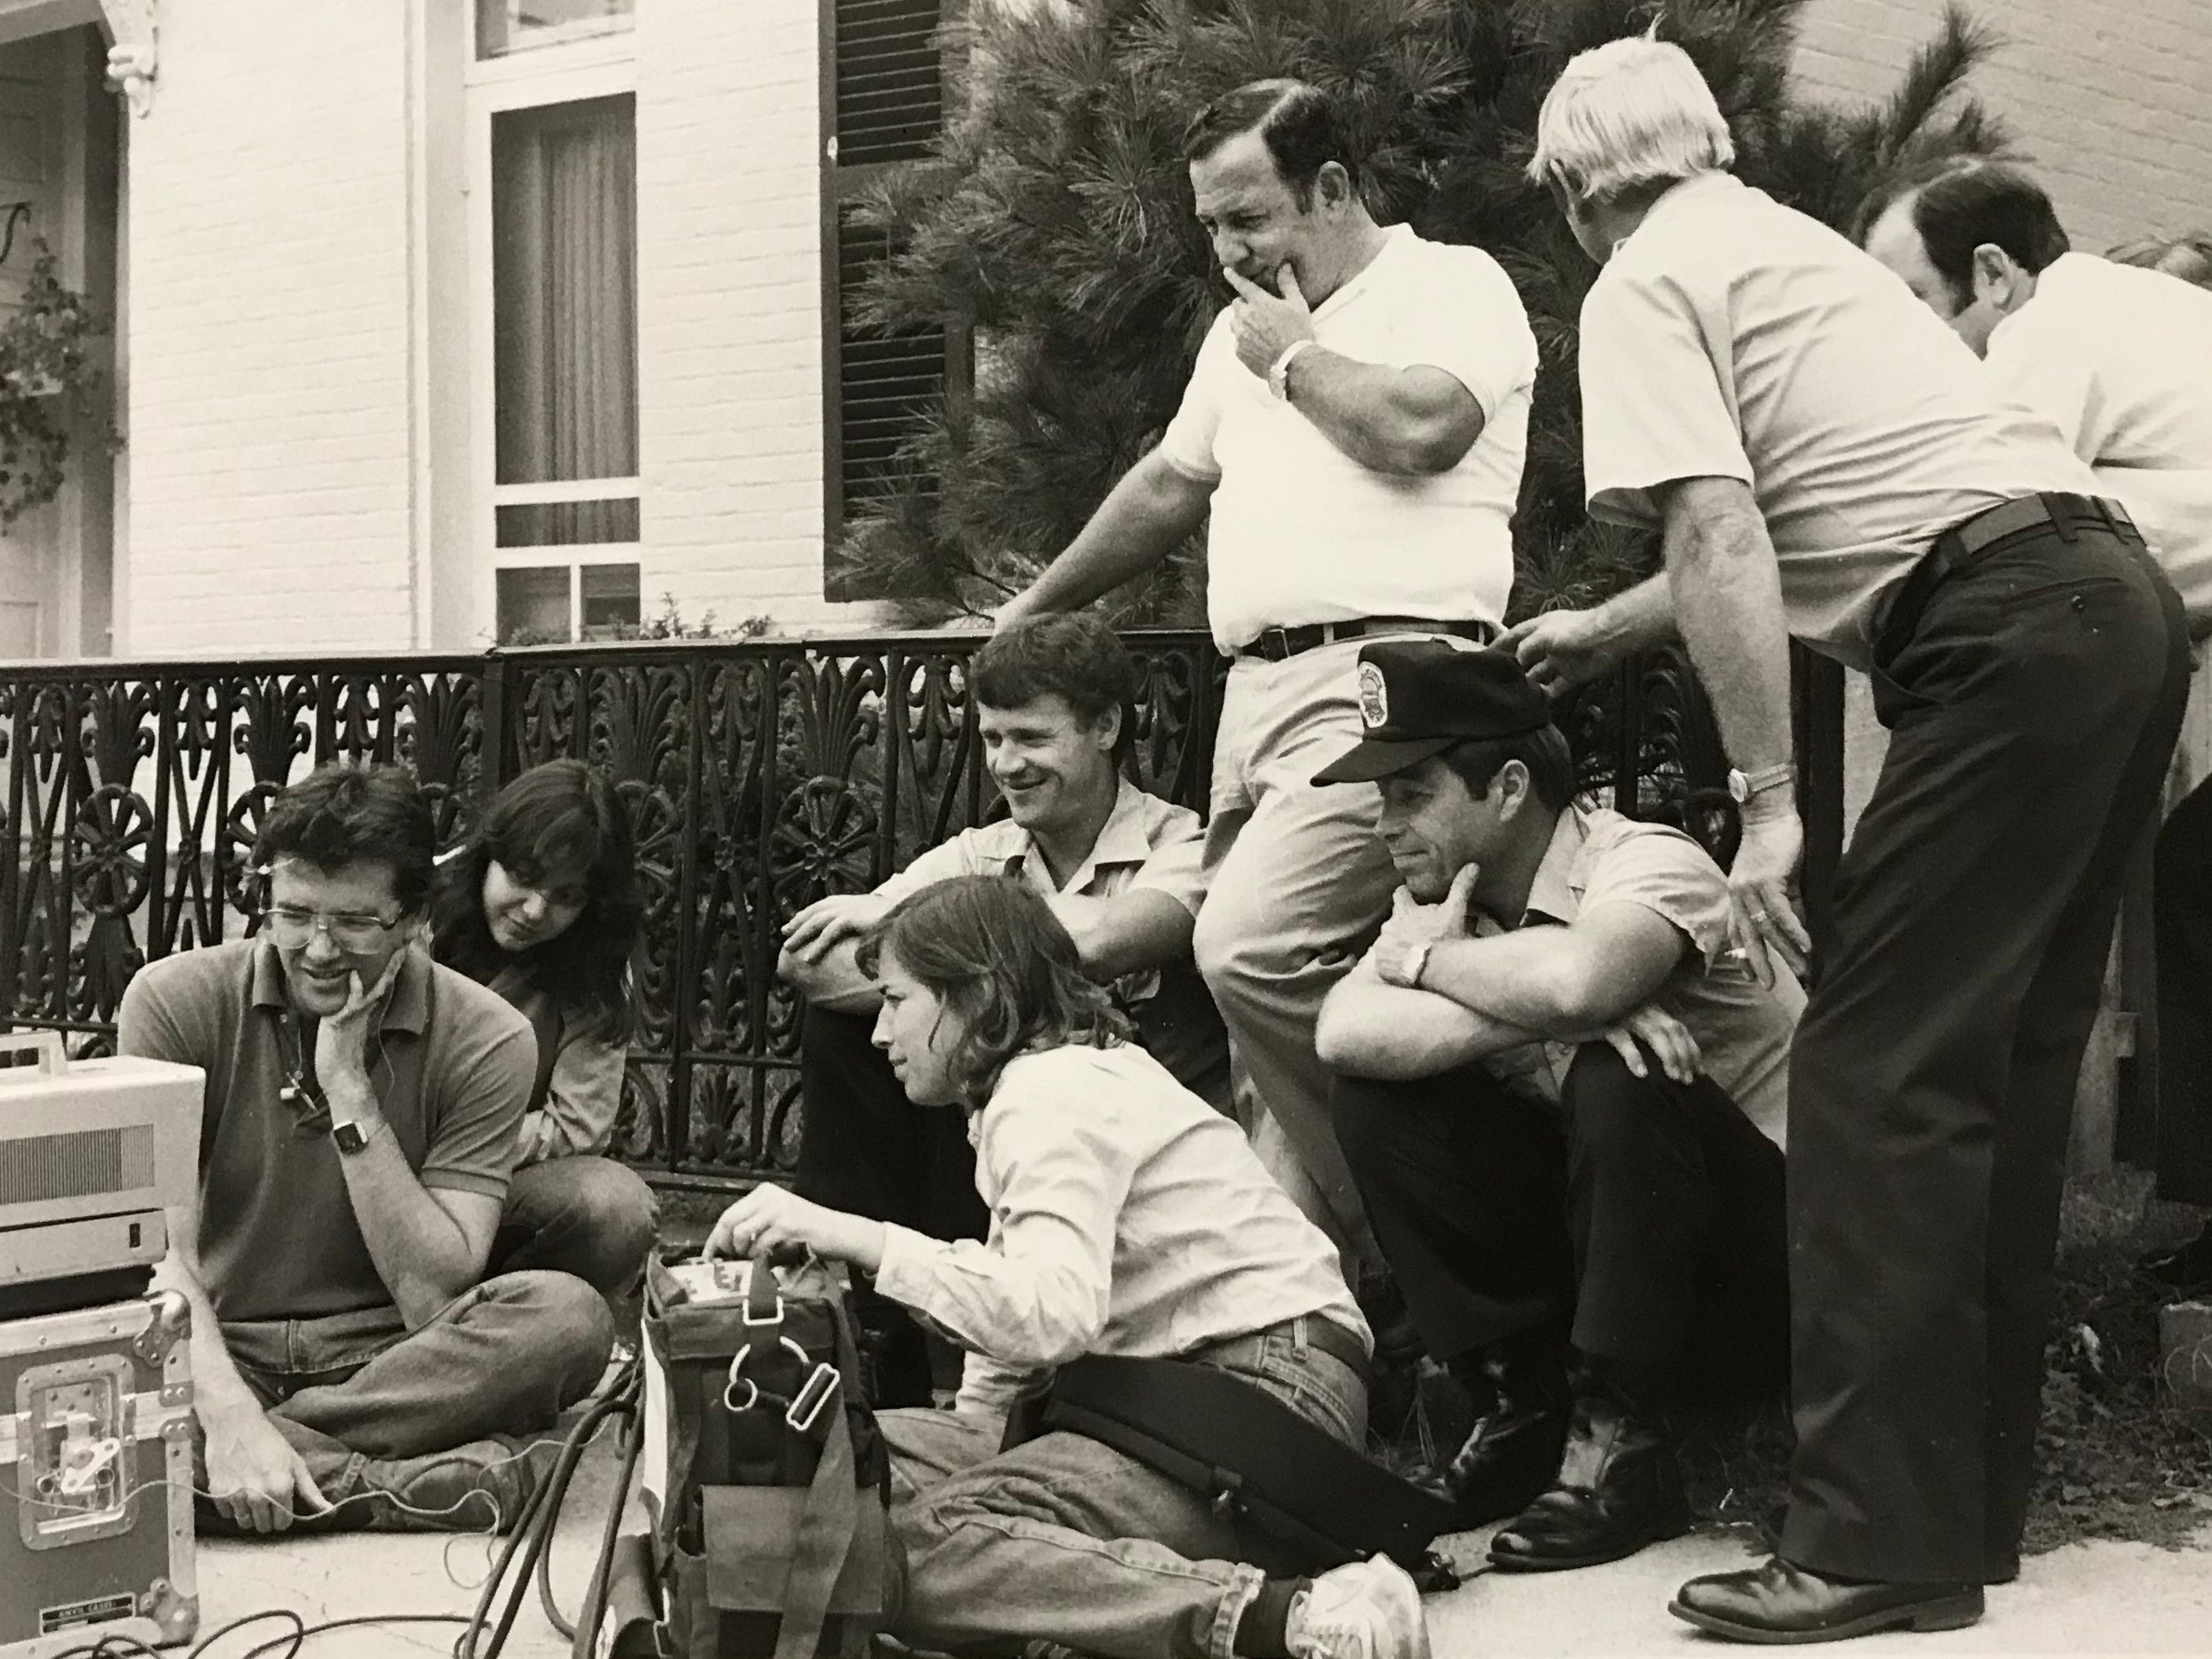 Chillicothe firefighters watch parts of a safety film along with those who helped make it in October 1984. The film featured some Chillicothe firefighters.